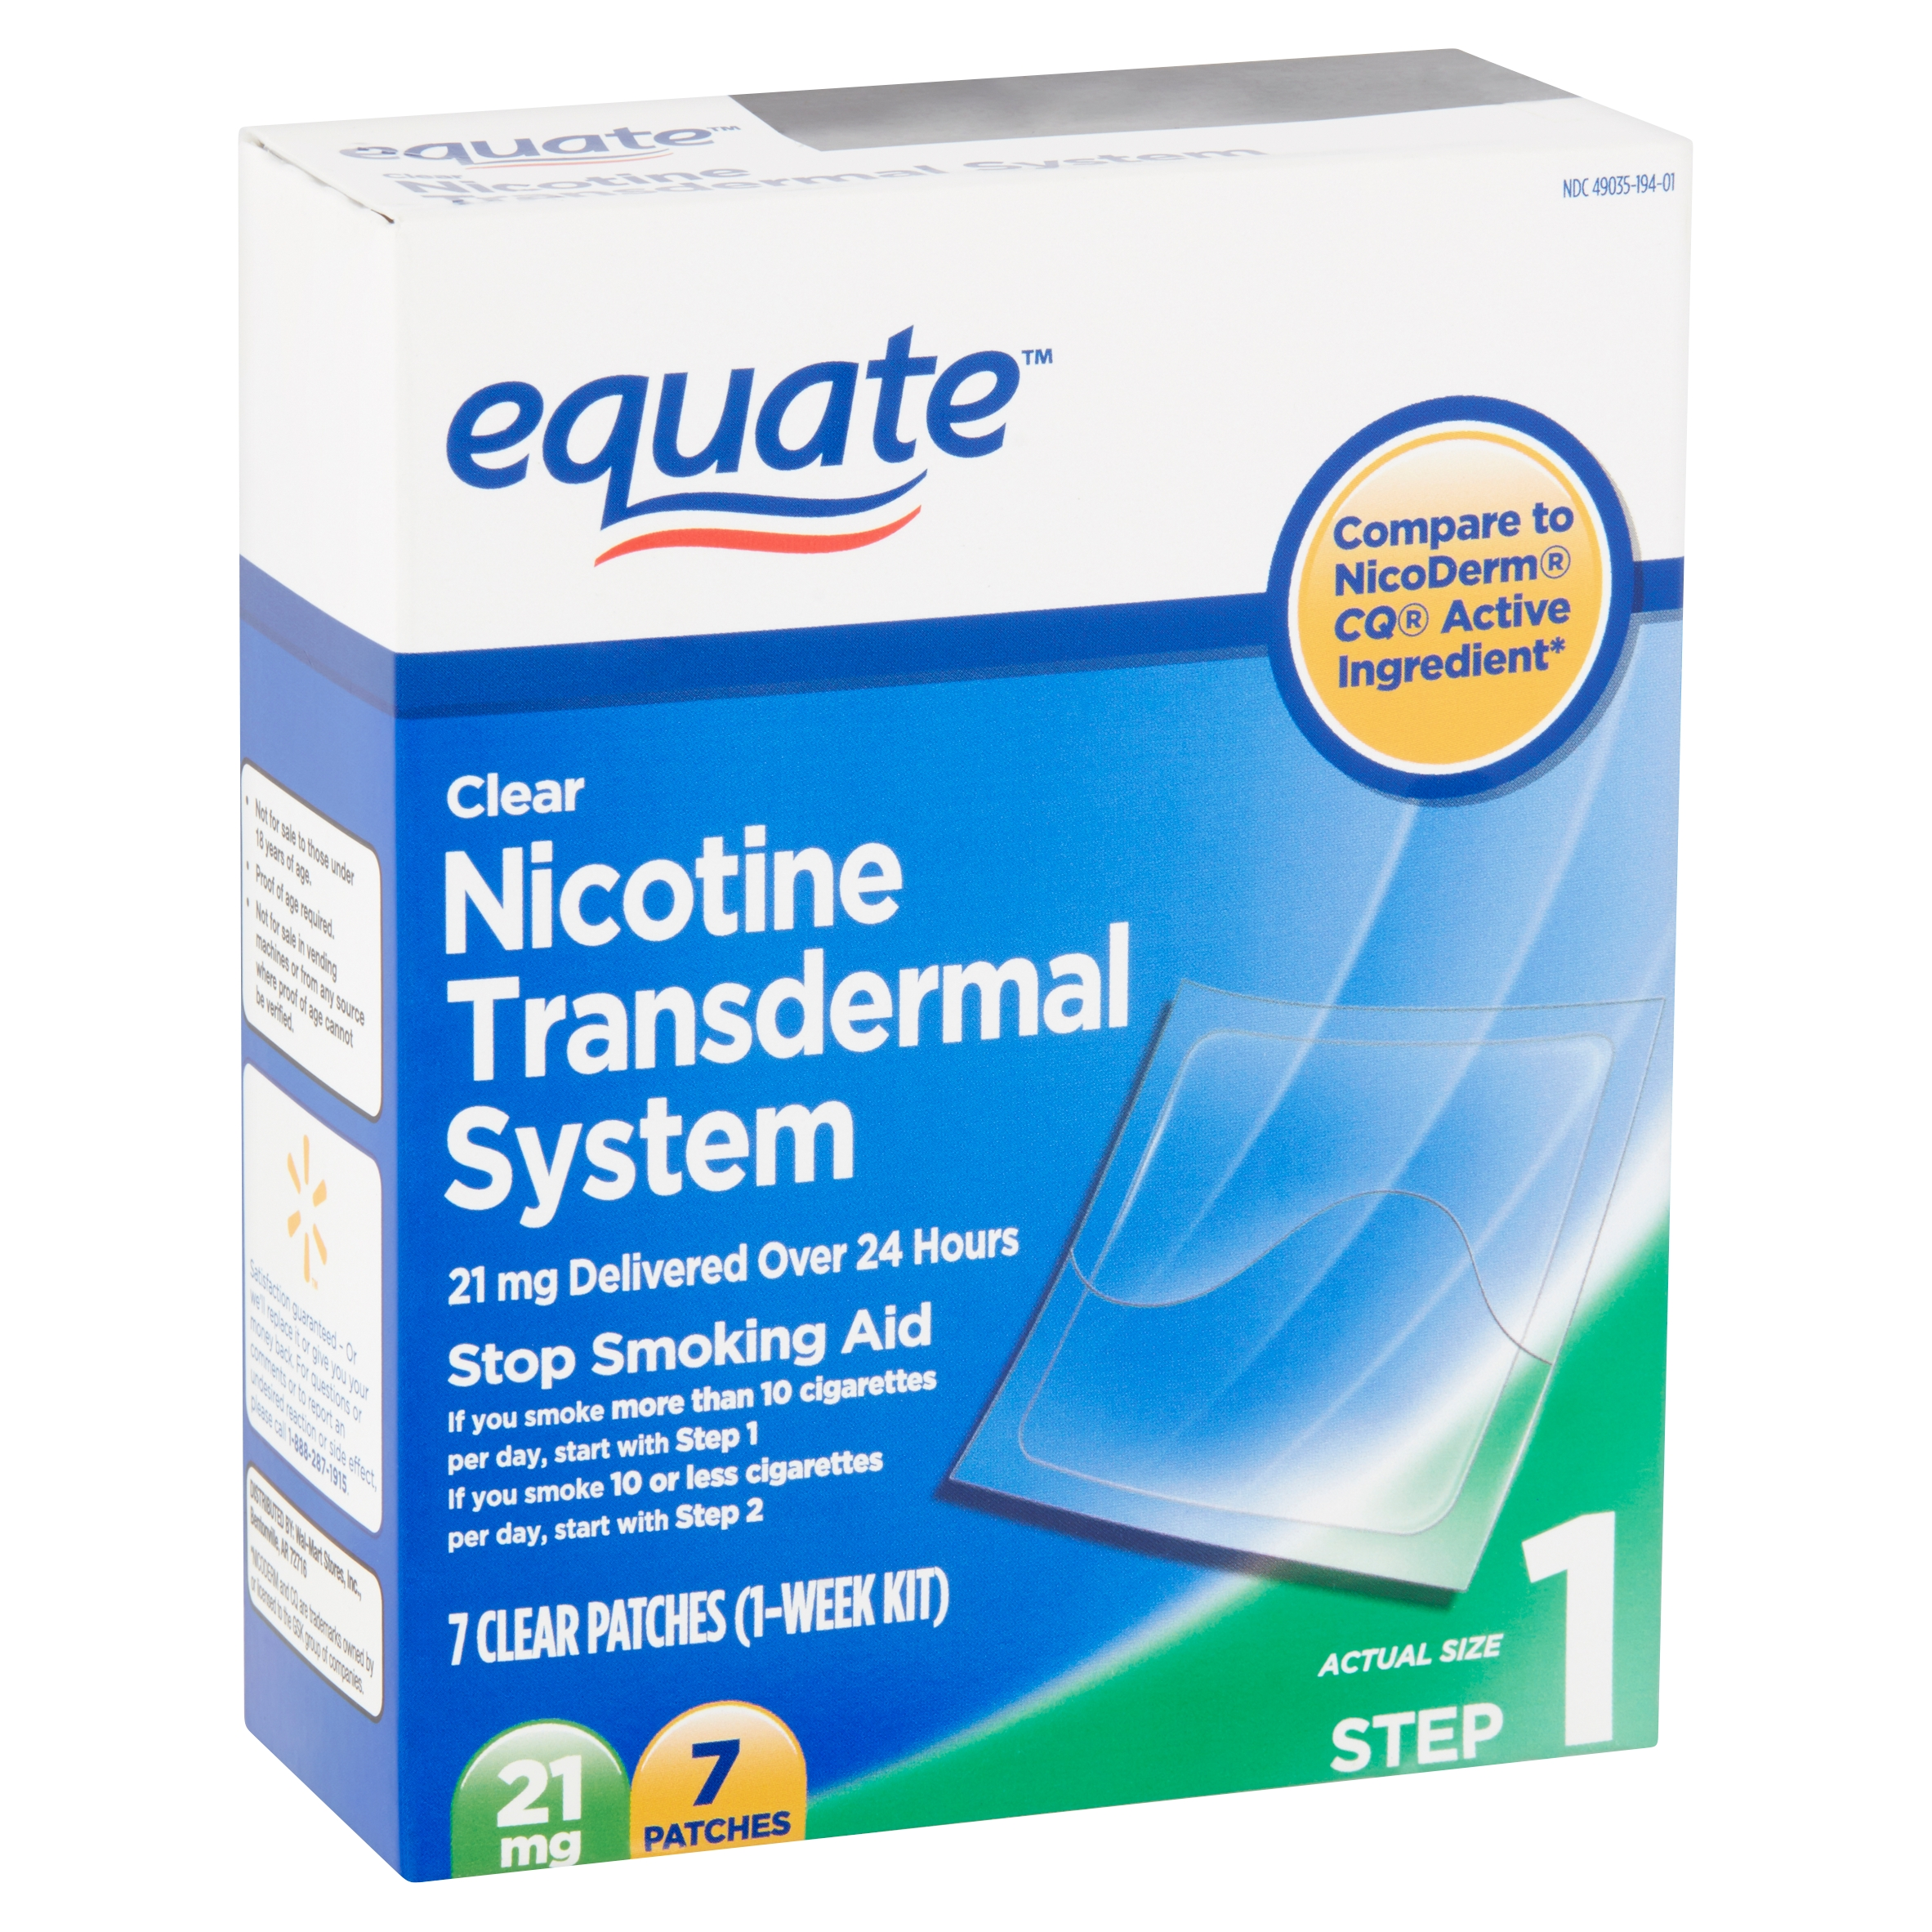 Equate Nicotine Transdermal System Clear Patches, 21 mg, Step 1, 7 count